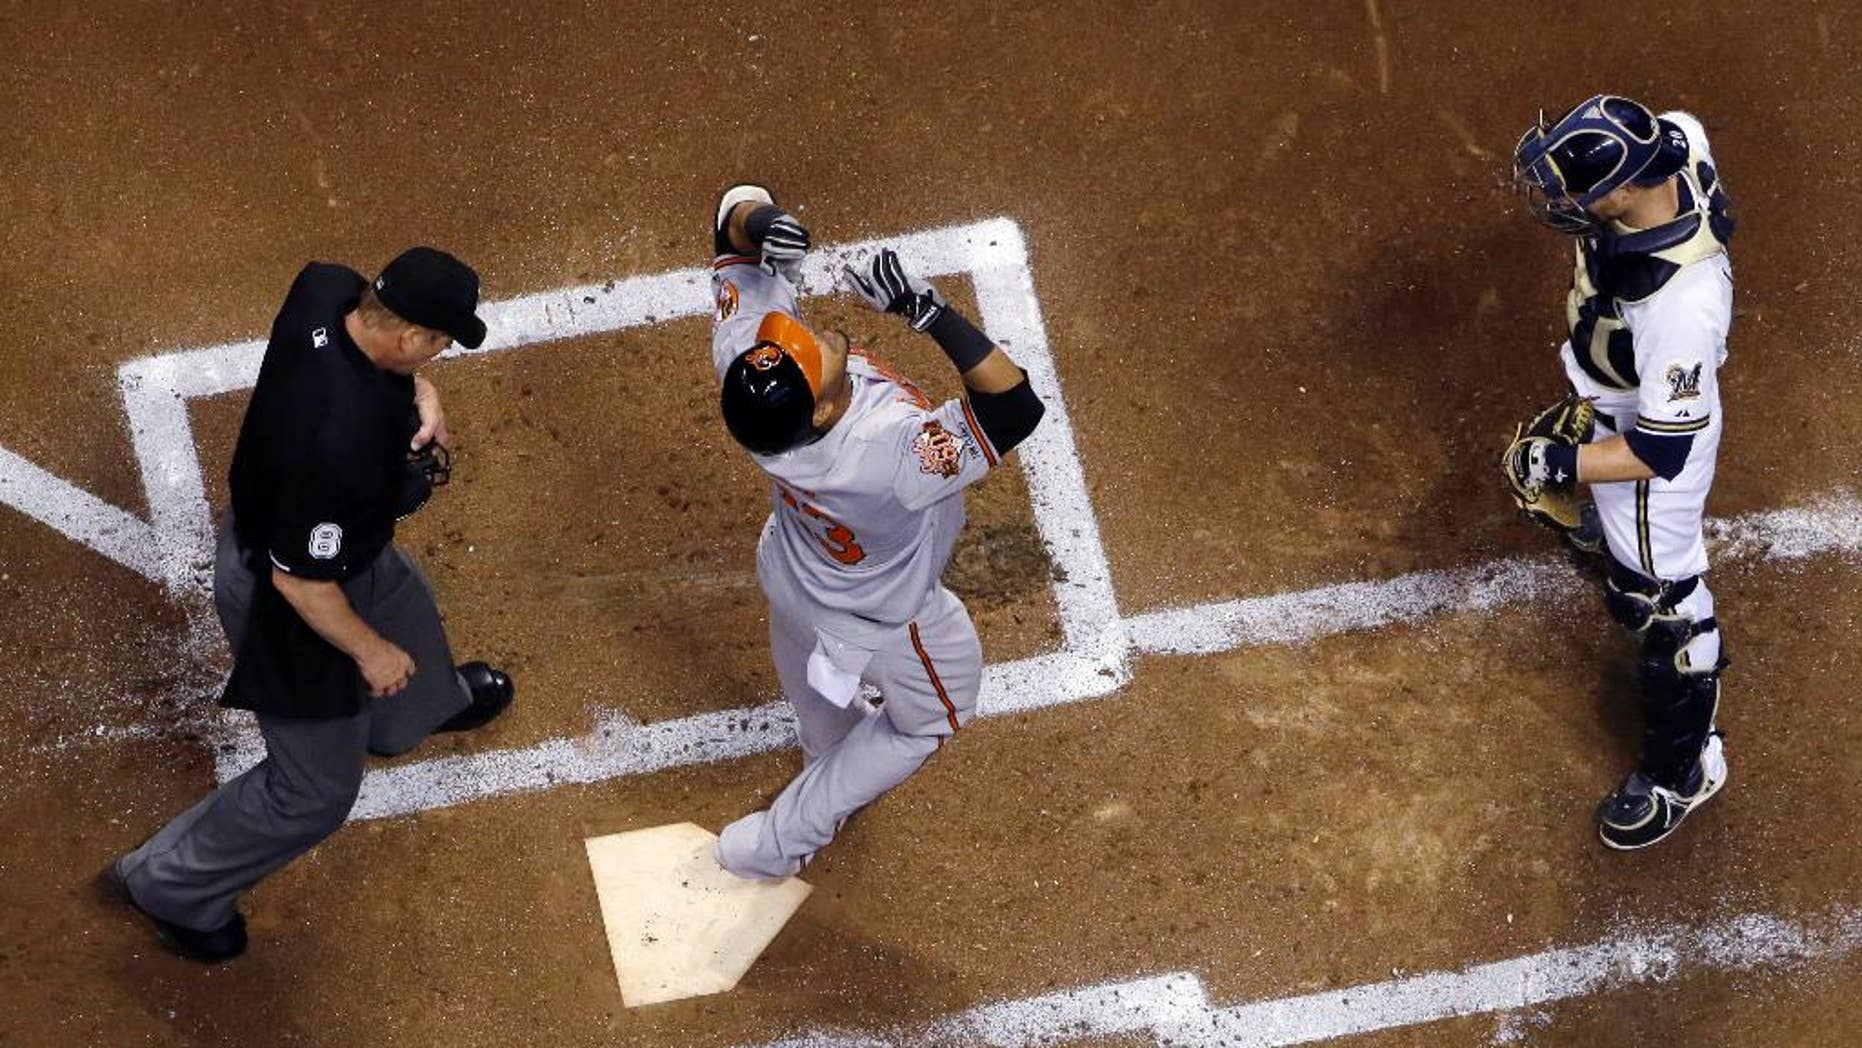 Baltimore Orioles' Nelson Cruz looks up as he crosses home after hitting a home run during the second inning of a baseball game against the Milwaukee Brewers on Wednesday, May 28, 2014, in Milwaukee. (AP Photo/Morry Gash)